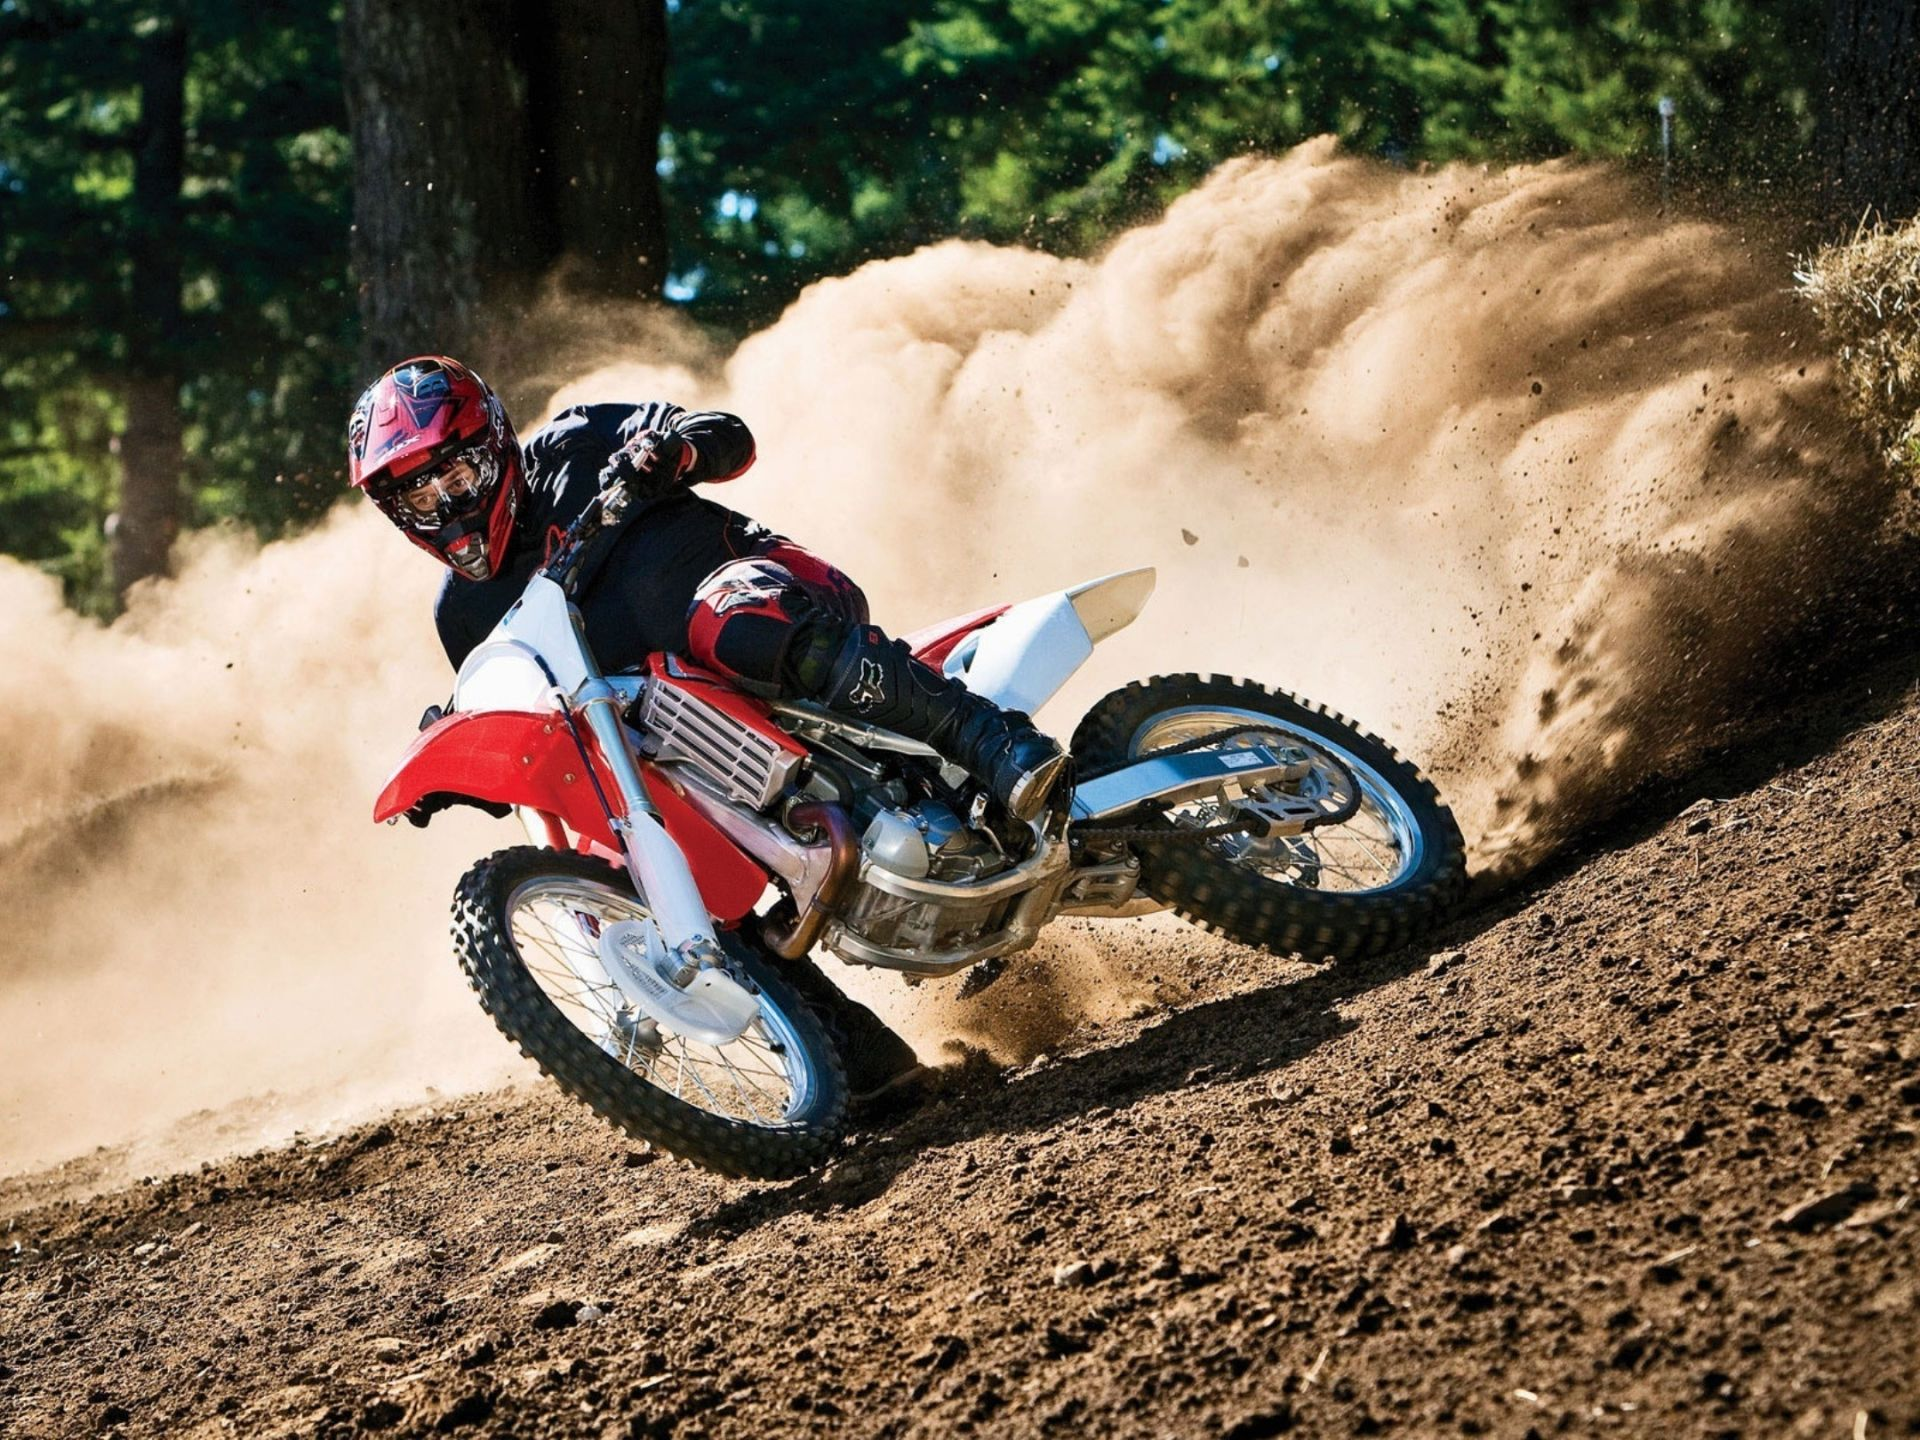 sports bike soil vehicle racer competition race motocross action biker hurry helmet wheel motion mud fast dust championship drive ride